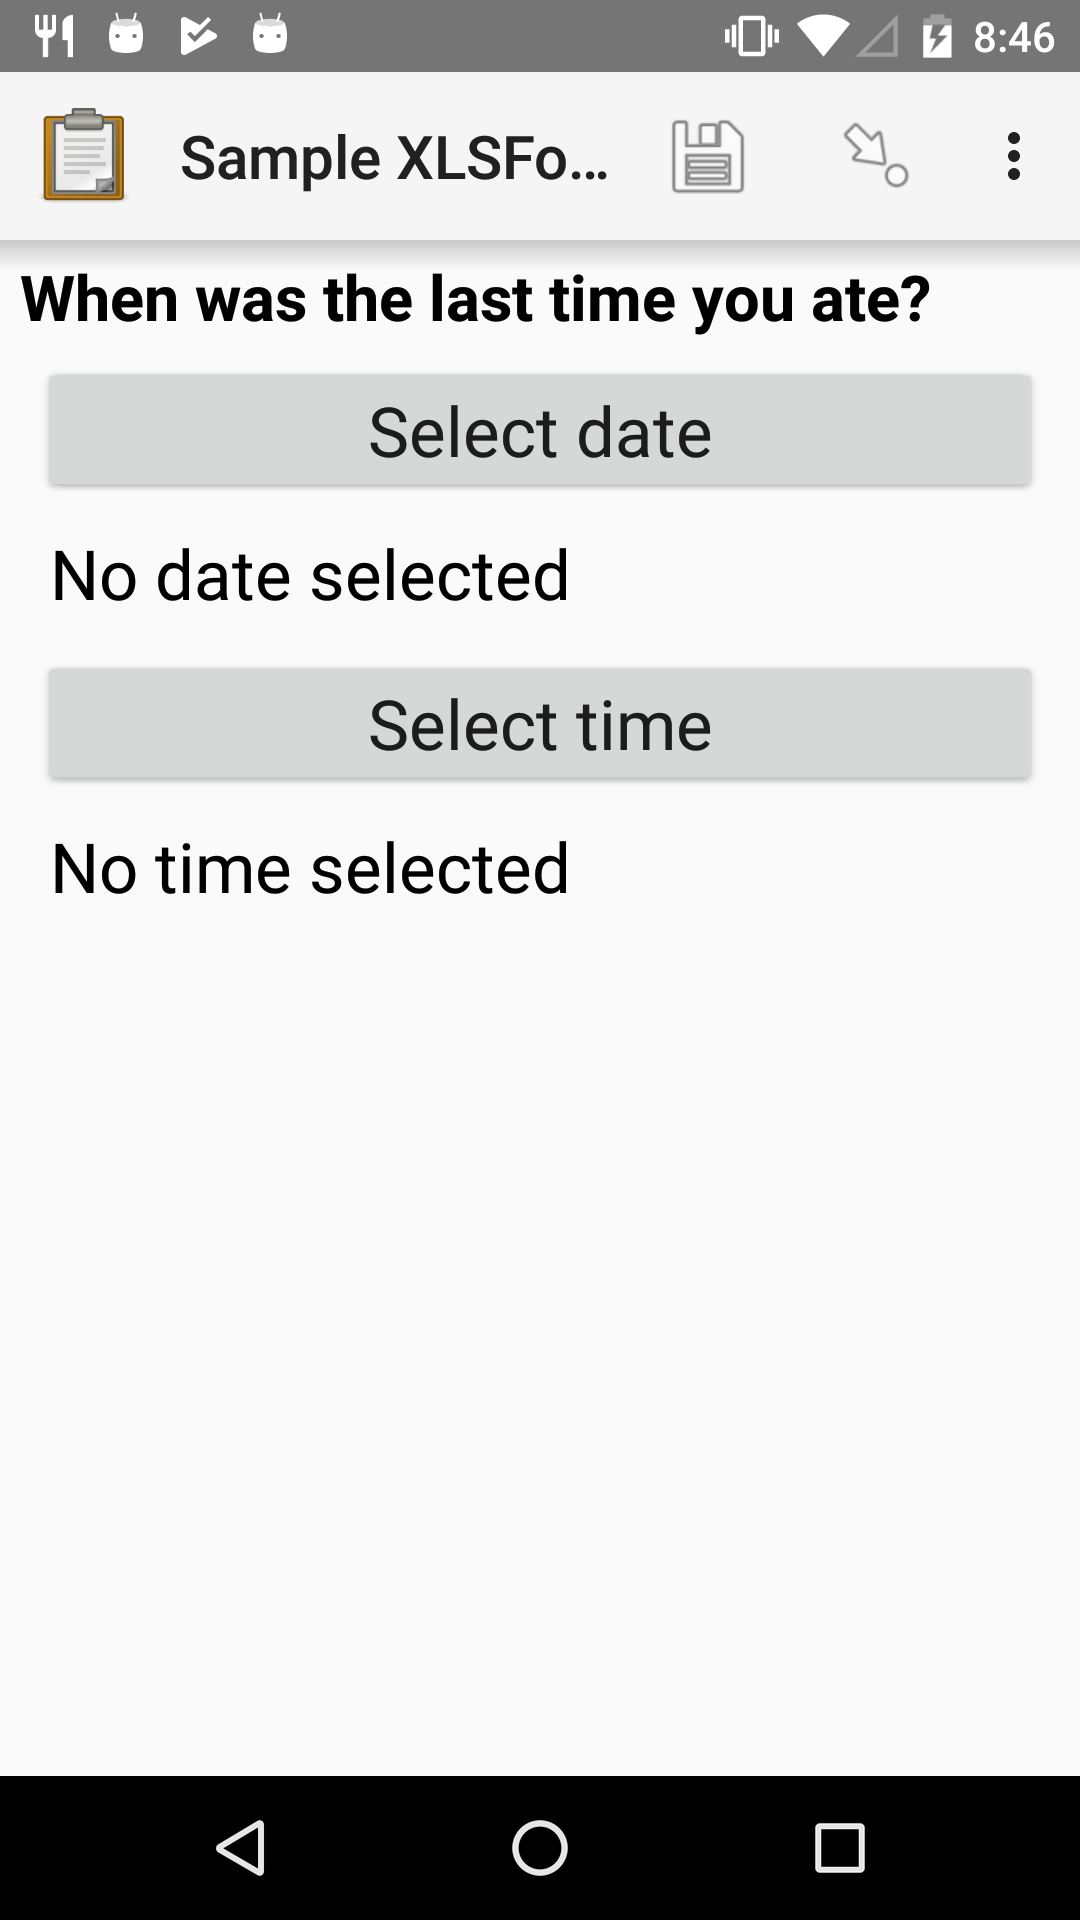 "The Datetime form widget as displayed in the ODK Collect App on an Android phone. The question text is ""When was the last time you ate?"" Below the question are two buttons. The first button is labeled ""Select date"" and below it is the message ""No date selected."" The second button is labeled ""Select time"" and below it is the message ""No time select."""